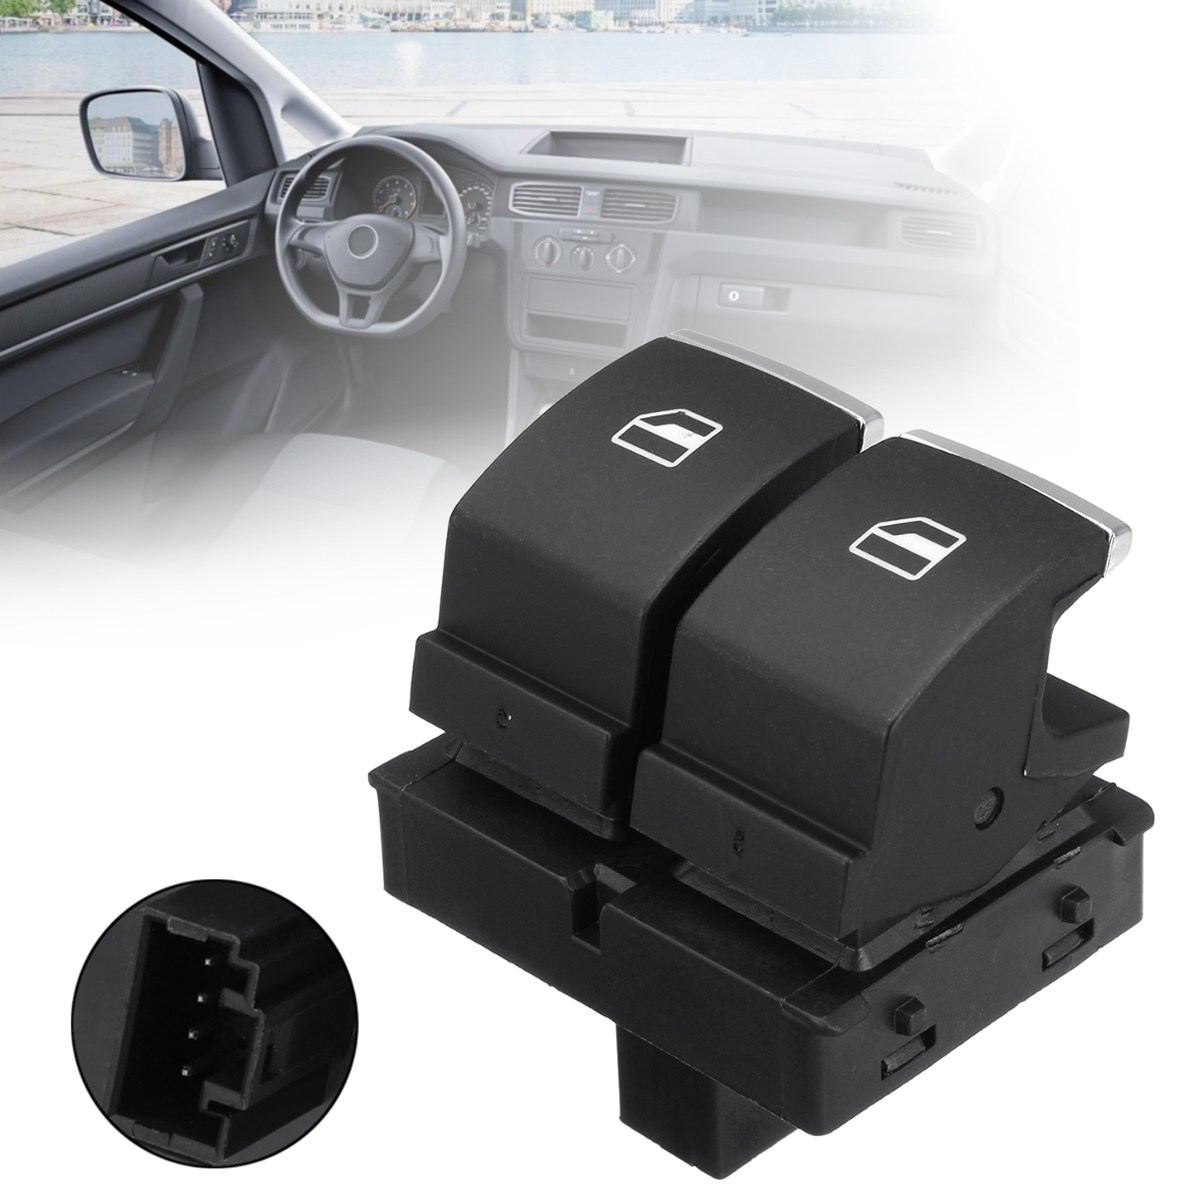 4 Pins ABS Front Driver Side Electric Power Window Switch For VW/Passat/EOS/Golf/Touran/GTI 2010 2011 2012 2013 2014 2015 2016 image